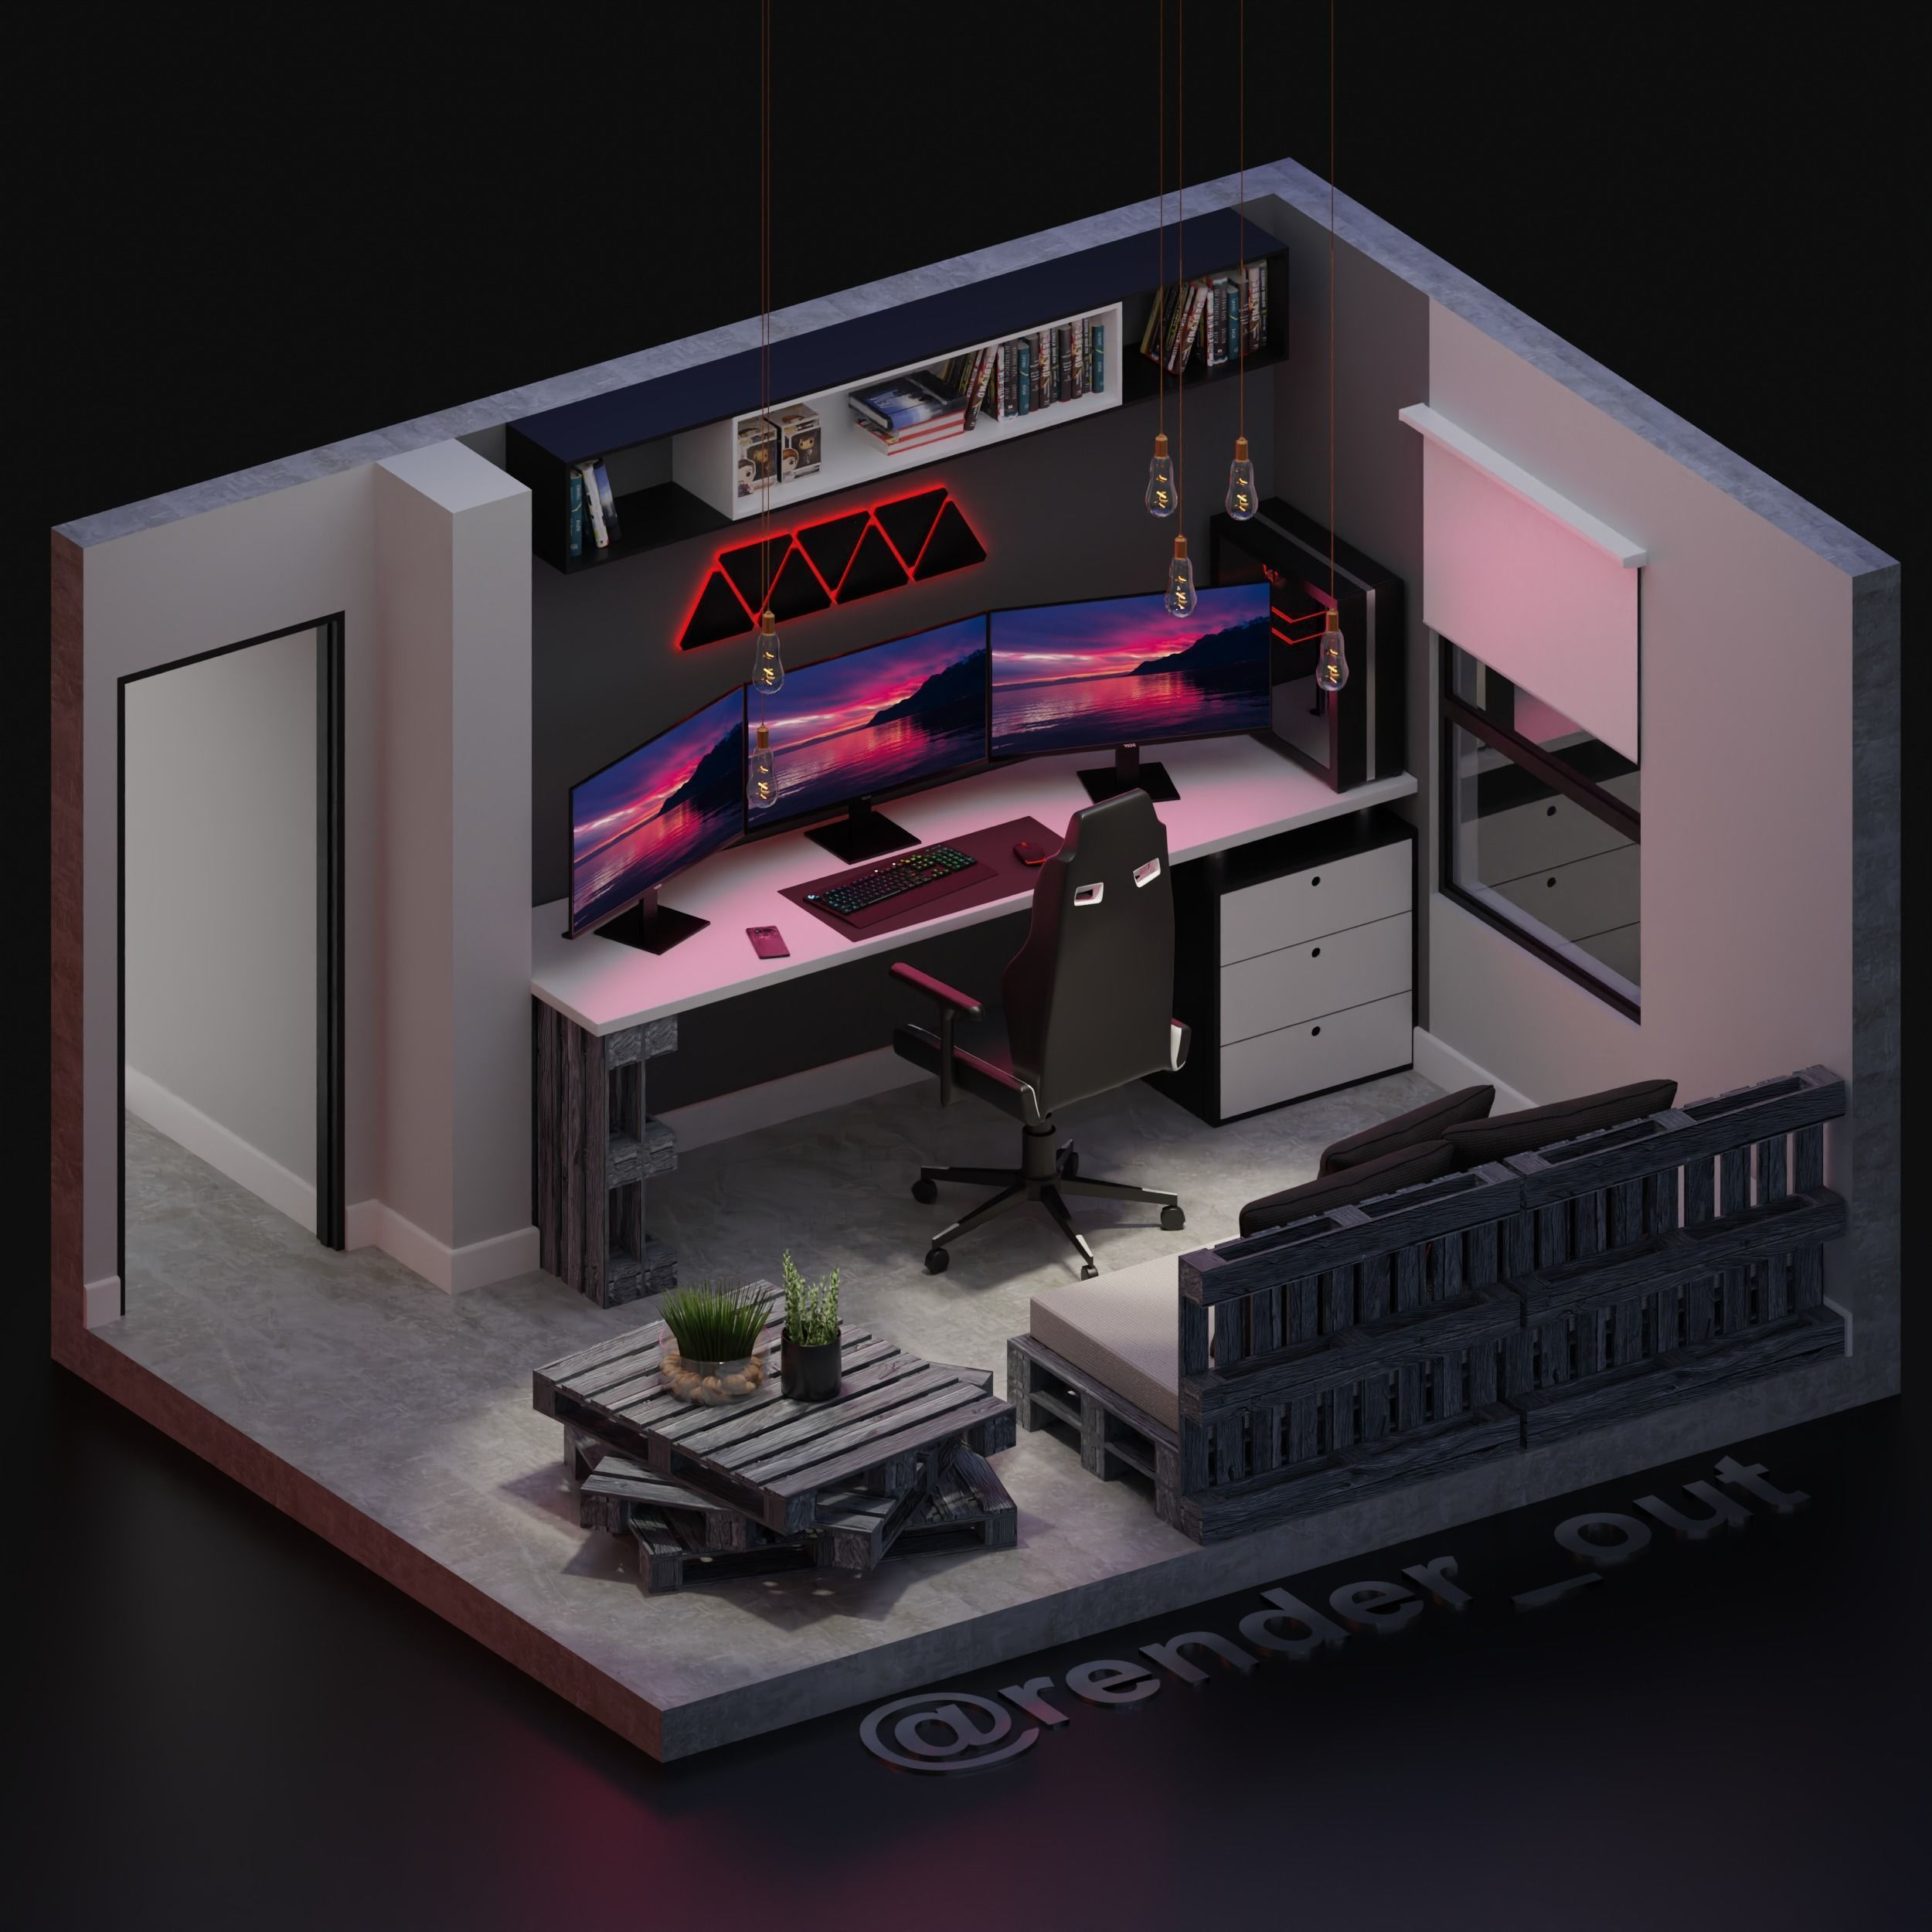 Cool 3D gaming setup 3D model in 2020 Small game